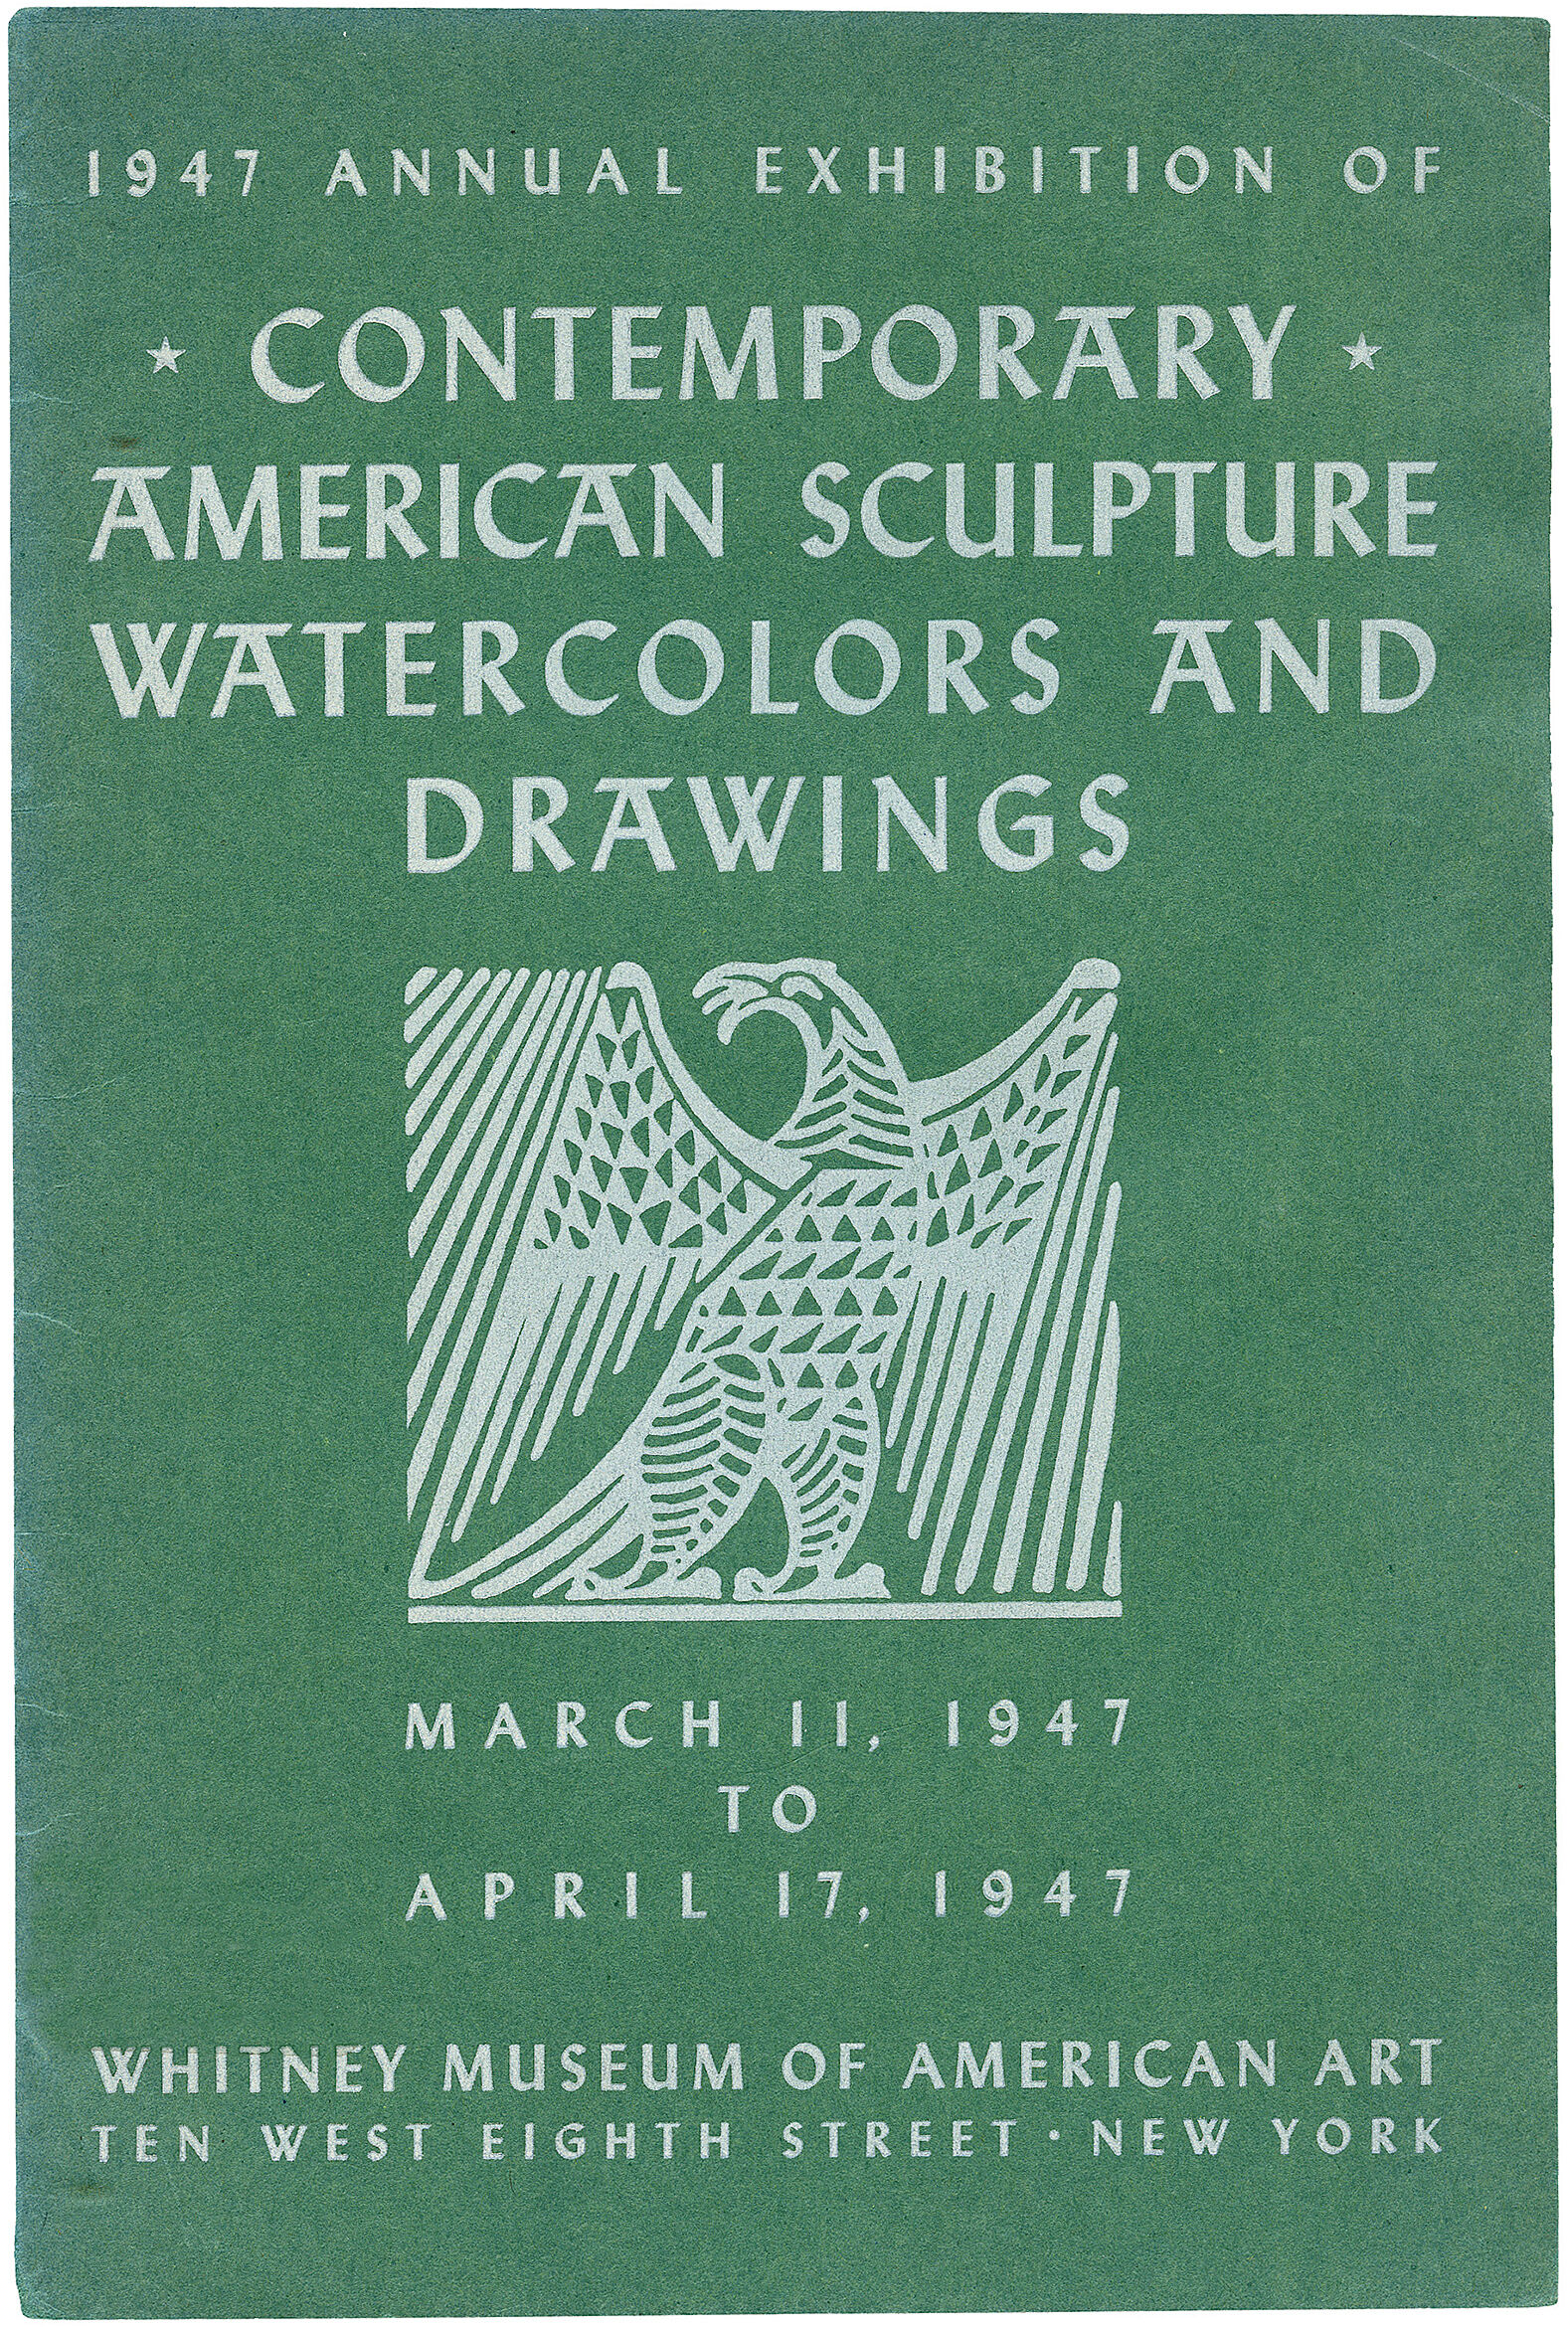 Cover for 1947 Annual Exhibition of Contemporary Ameirican Sculpture, Watercolors and Drawings catalogue